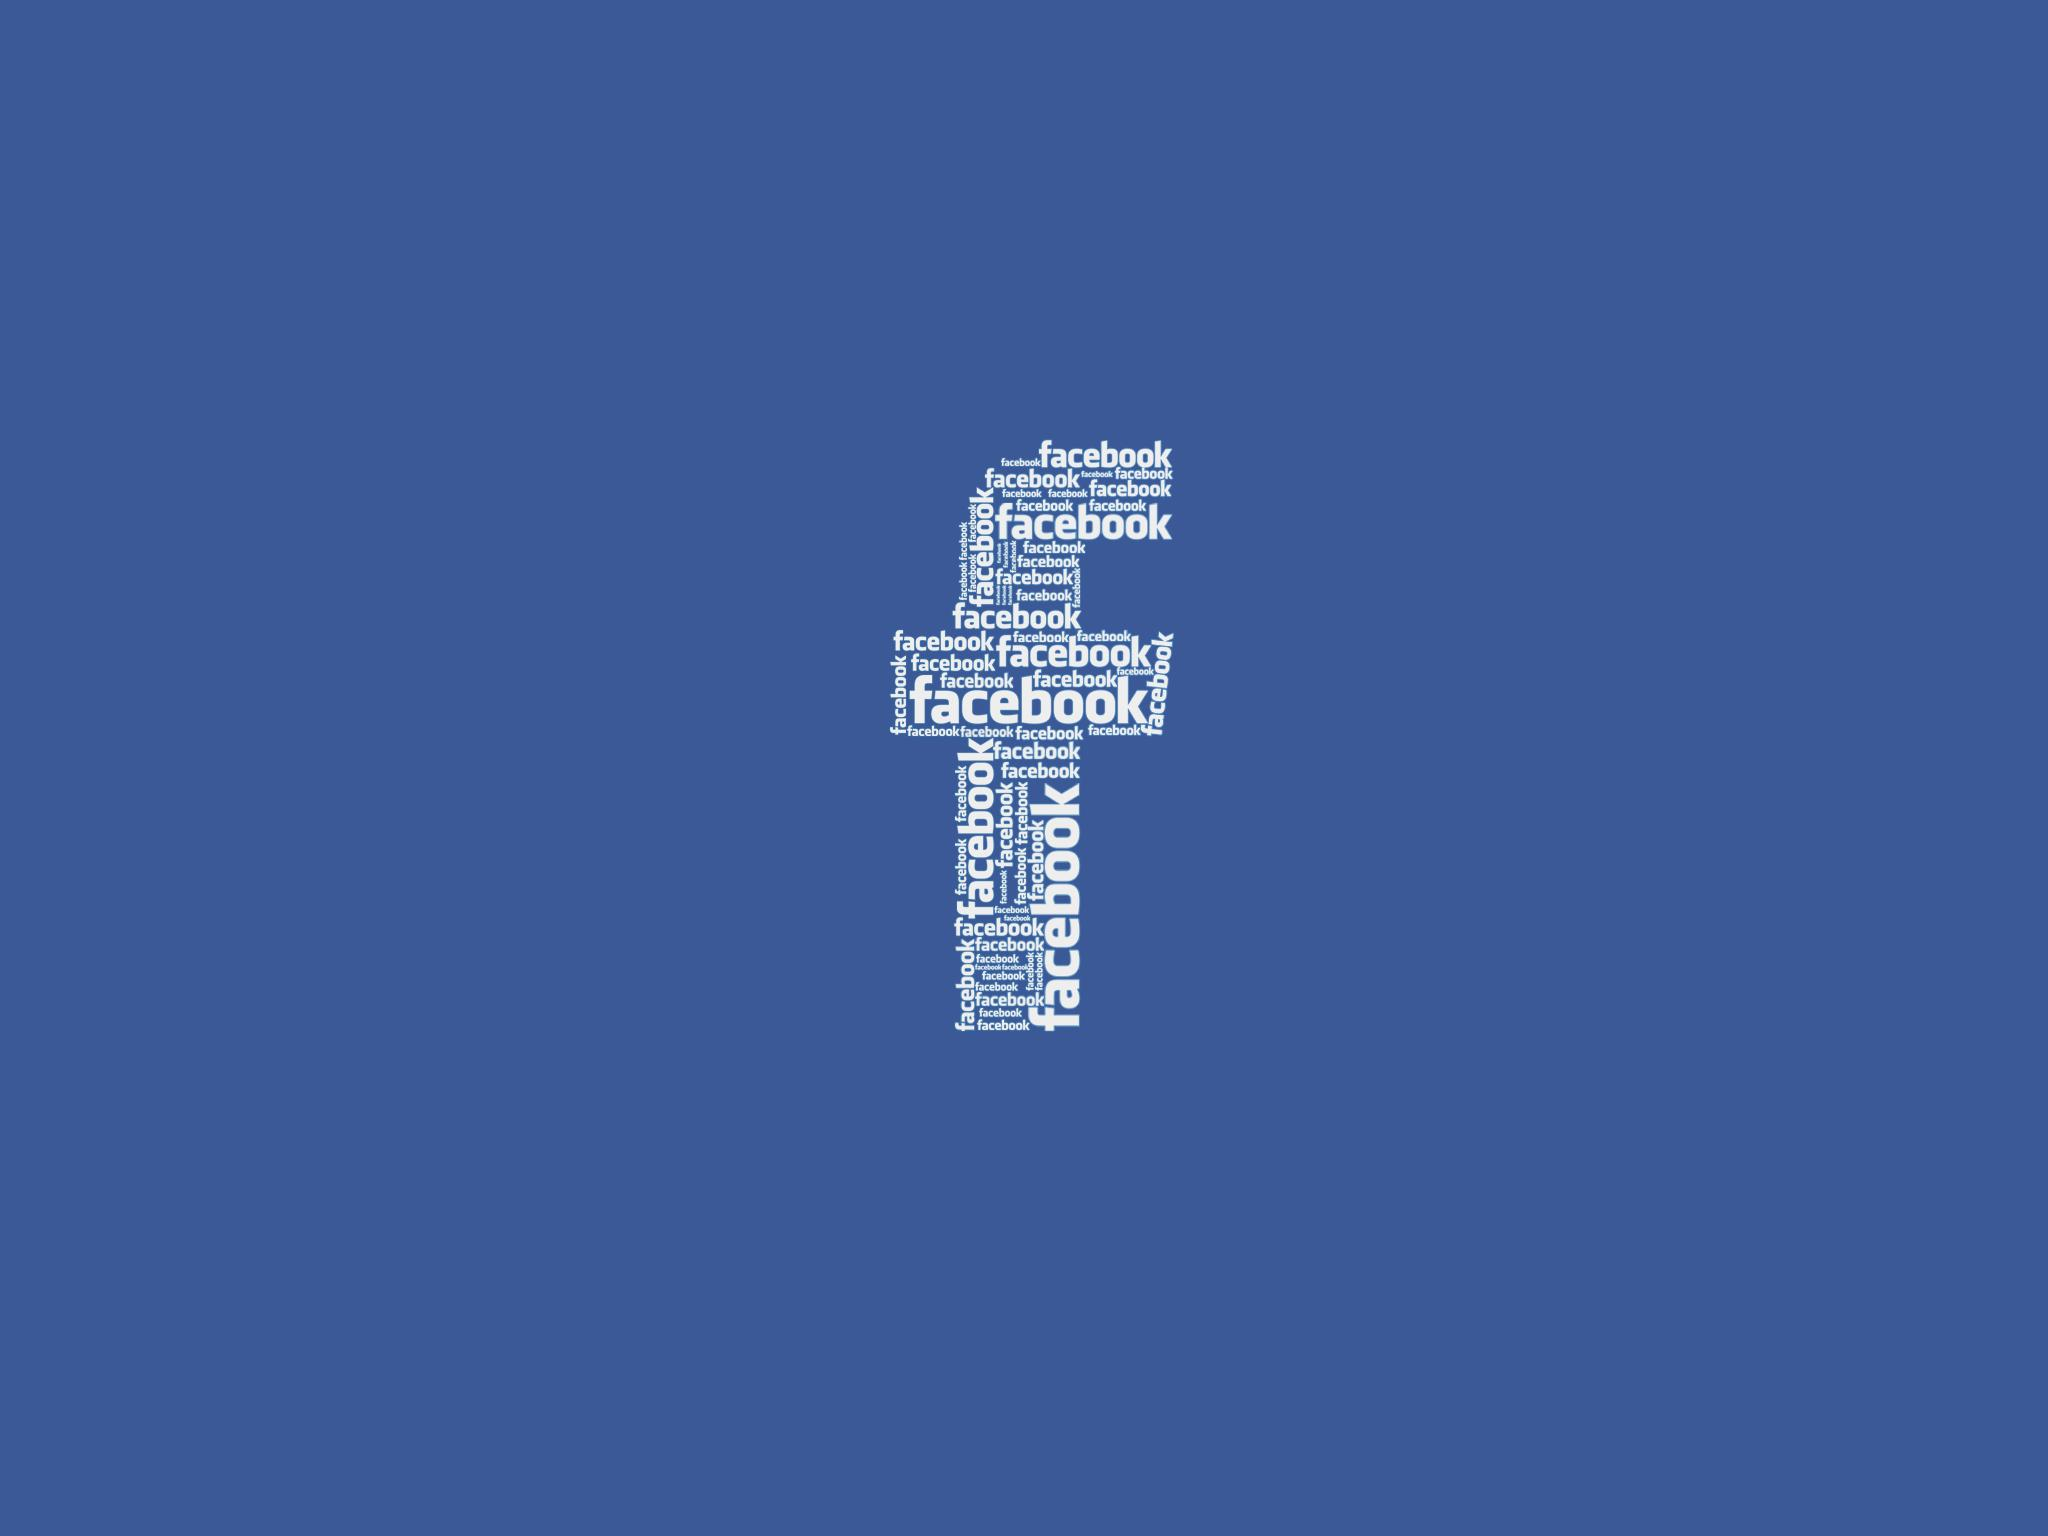 provide you with 300 Real Facebook Page Fans